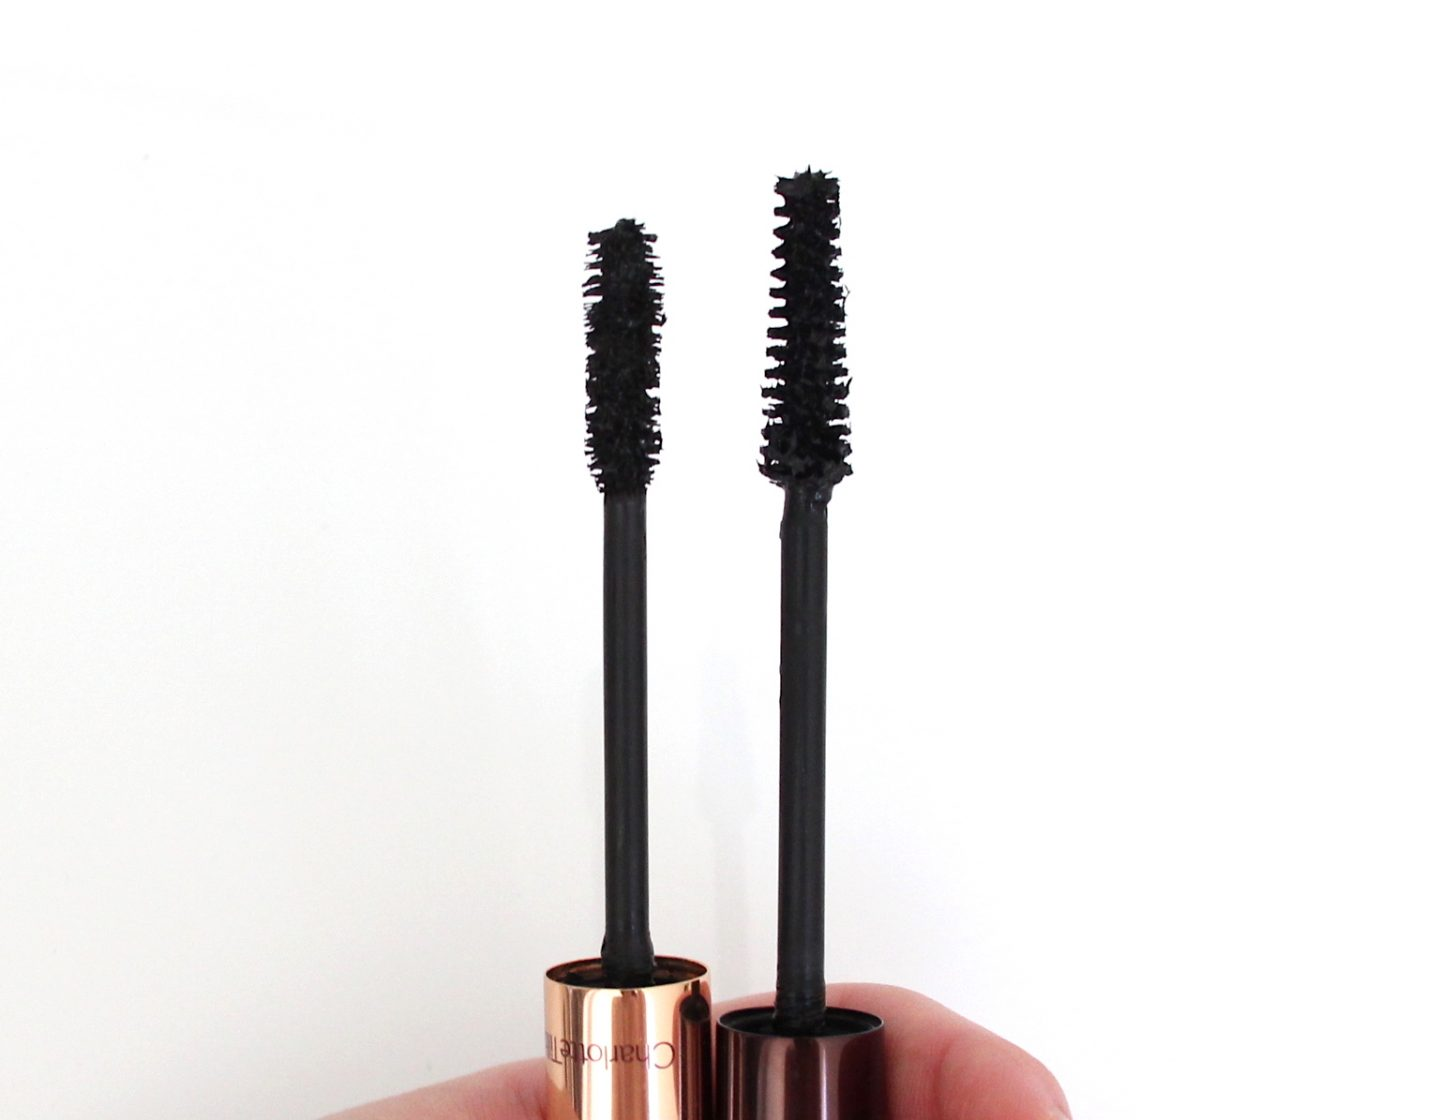 Mascara wands: Charlotte Tilbury Legendary Lashes (Left) vs Tom Ford Extreme (Right)